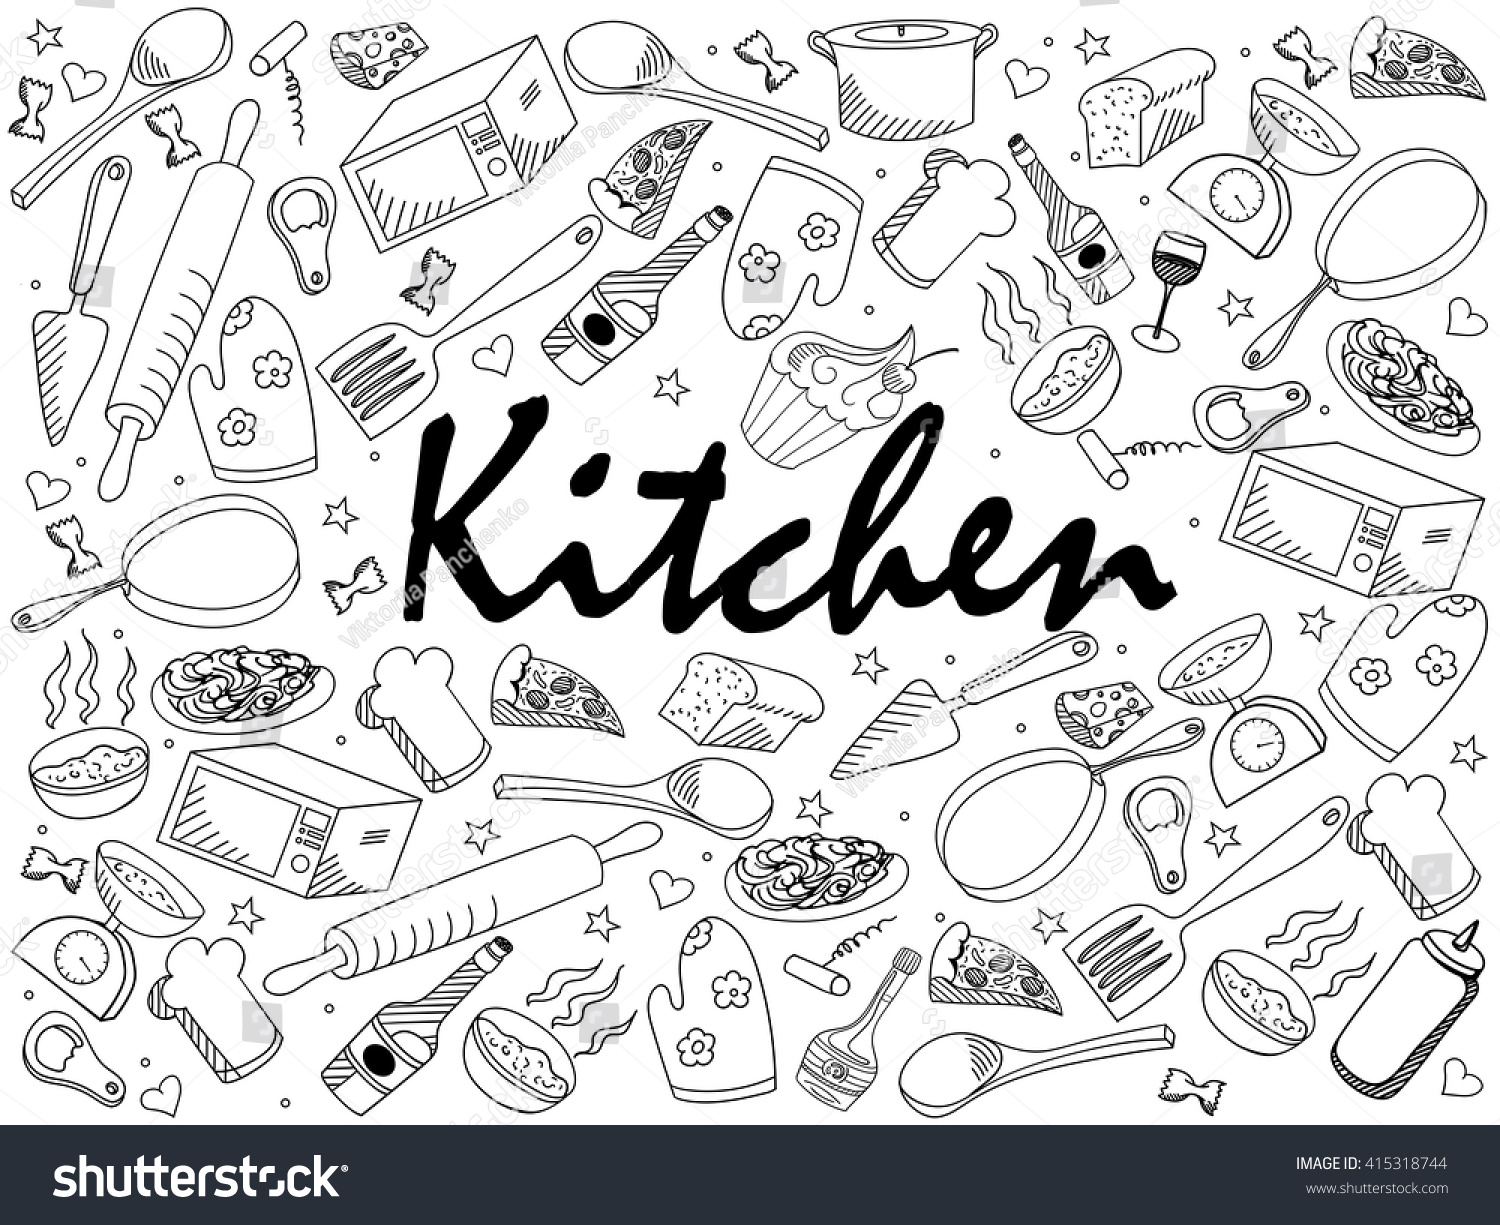 Kitchen Coloring Book Line Art Design Vector Illustration Separate Objects Hand Drawn Doodle